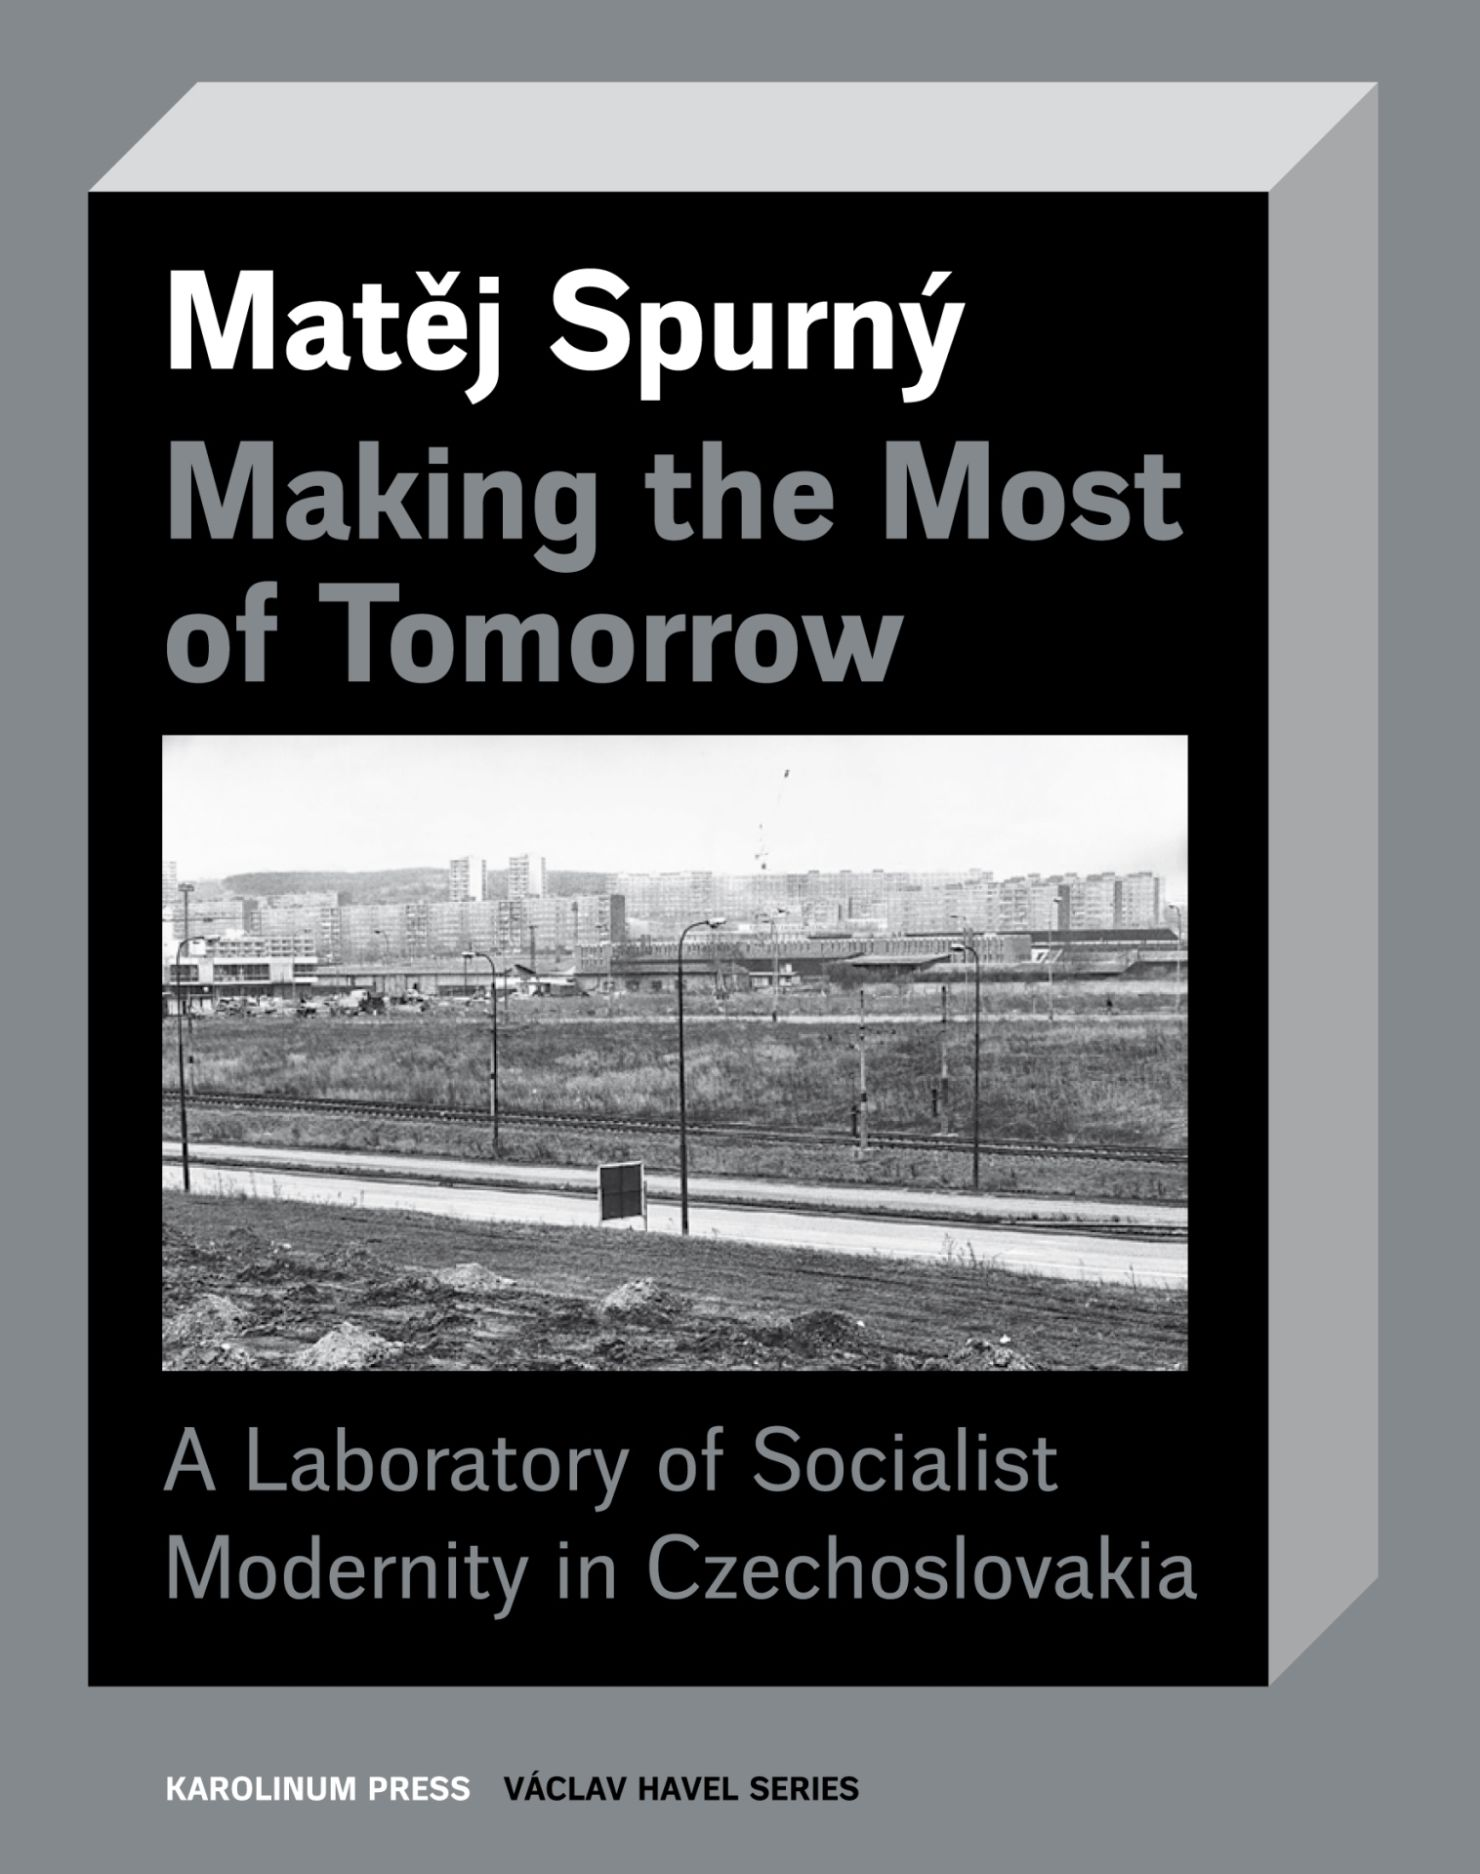 Making the Most of Tomorrow: A North Bohemian Laboratory of Socialist Modernism